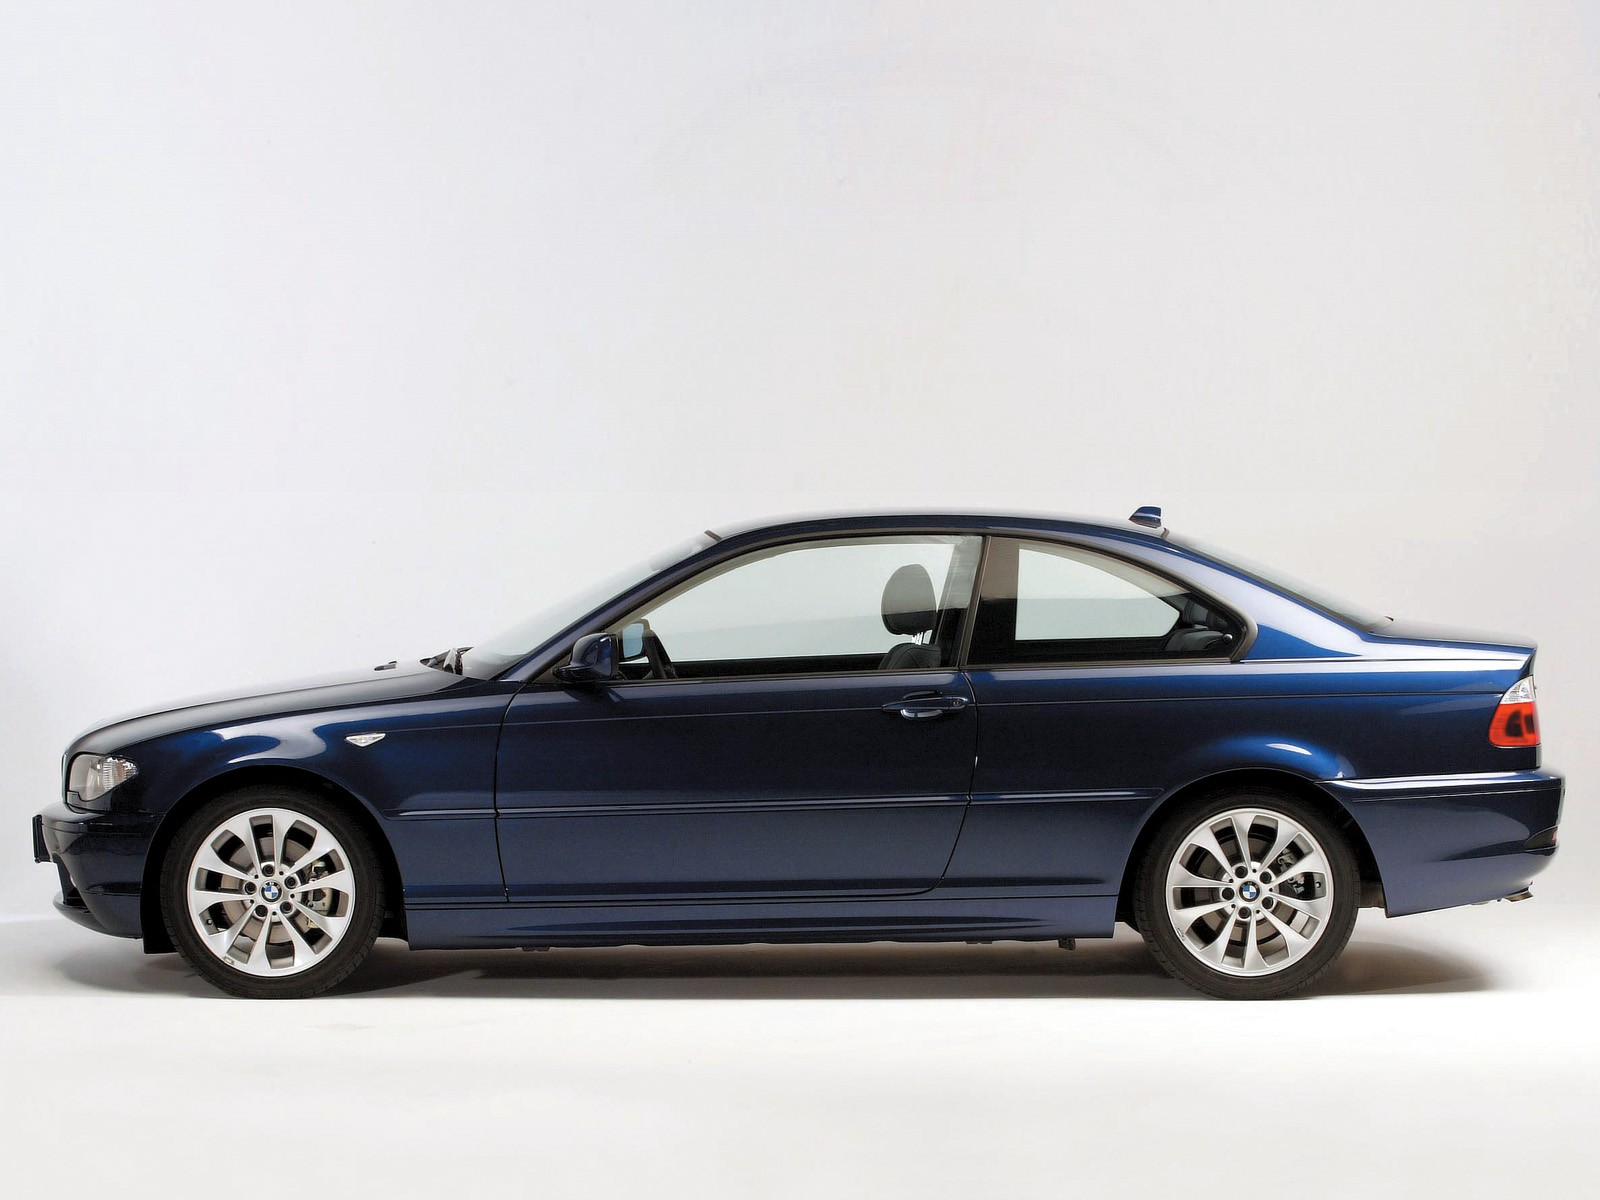 ... BMW 3 Series Coupe (E46) (2003 - 2006) ...